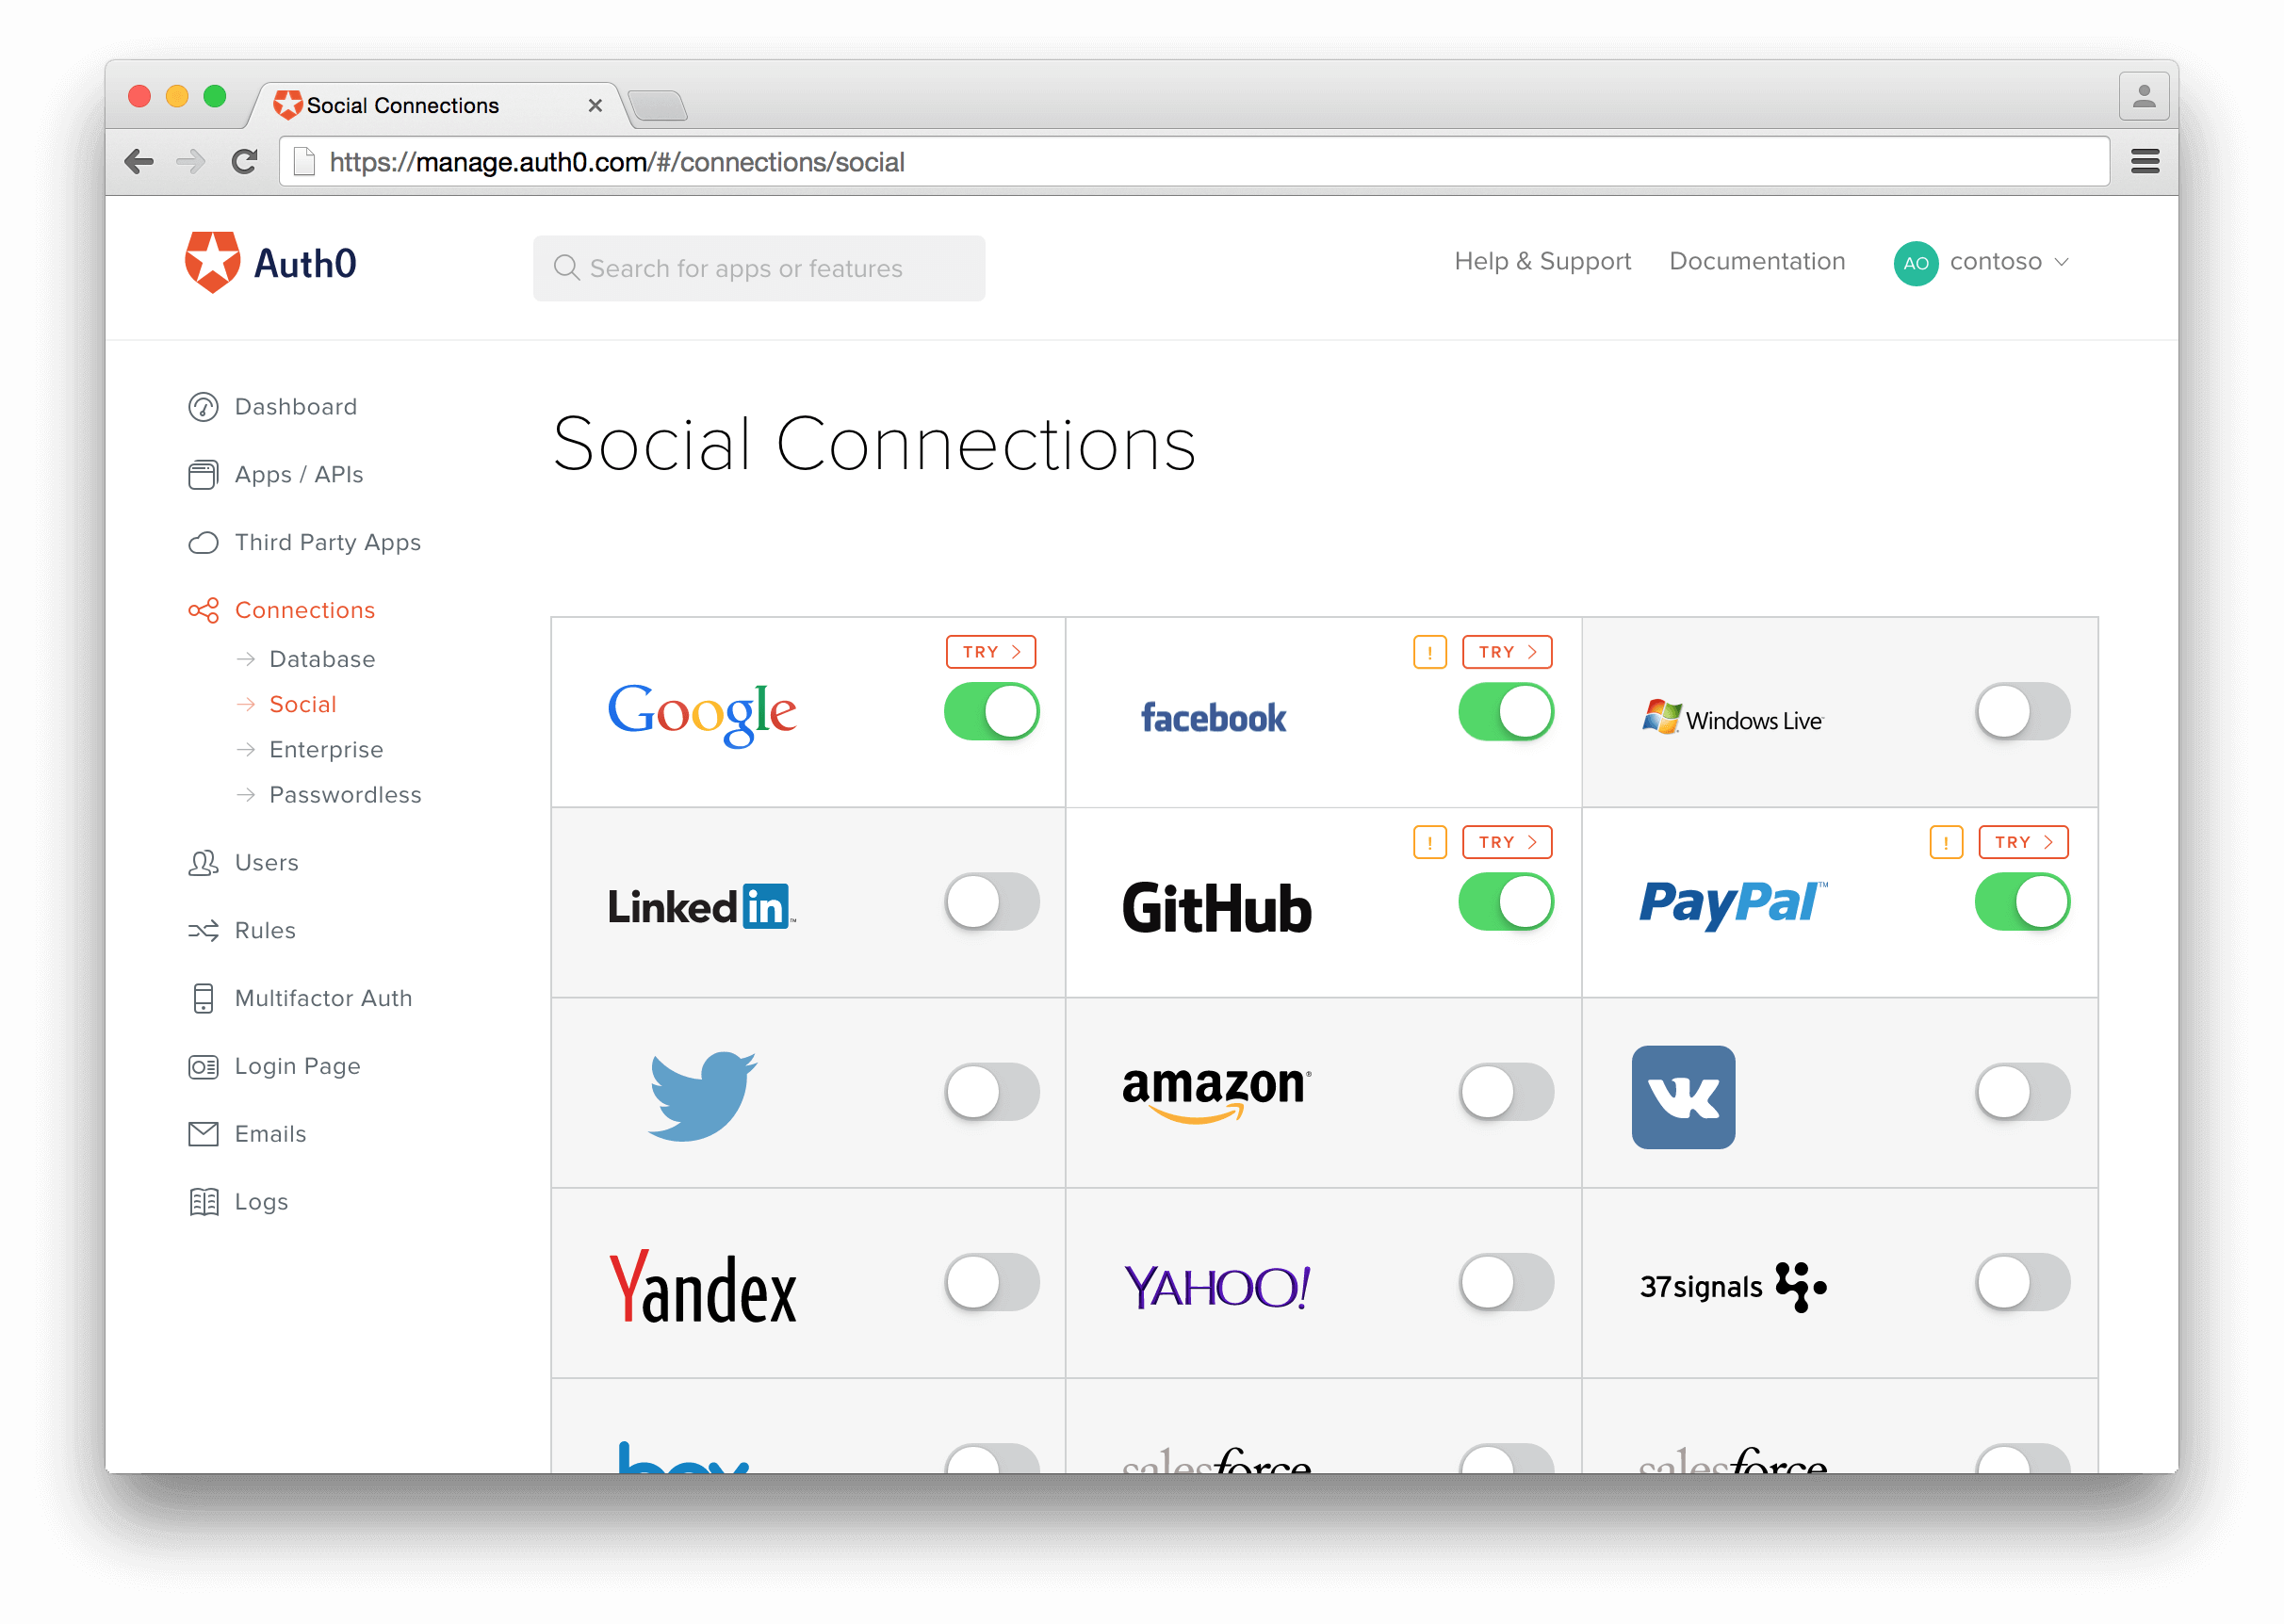 Create a Social Connection for authentication